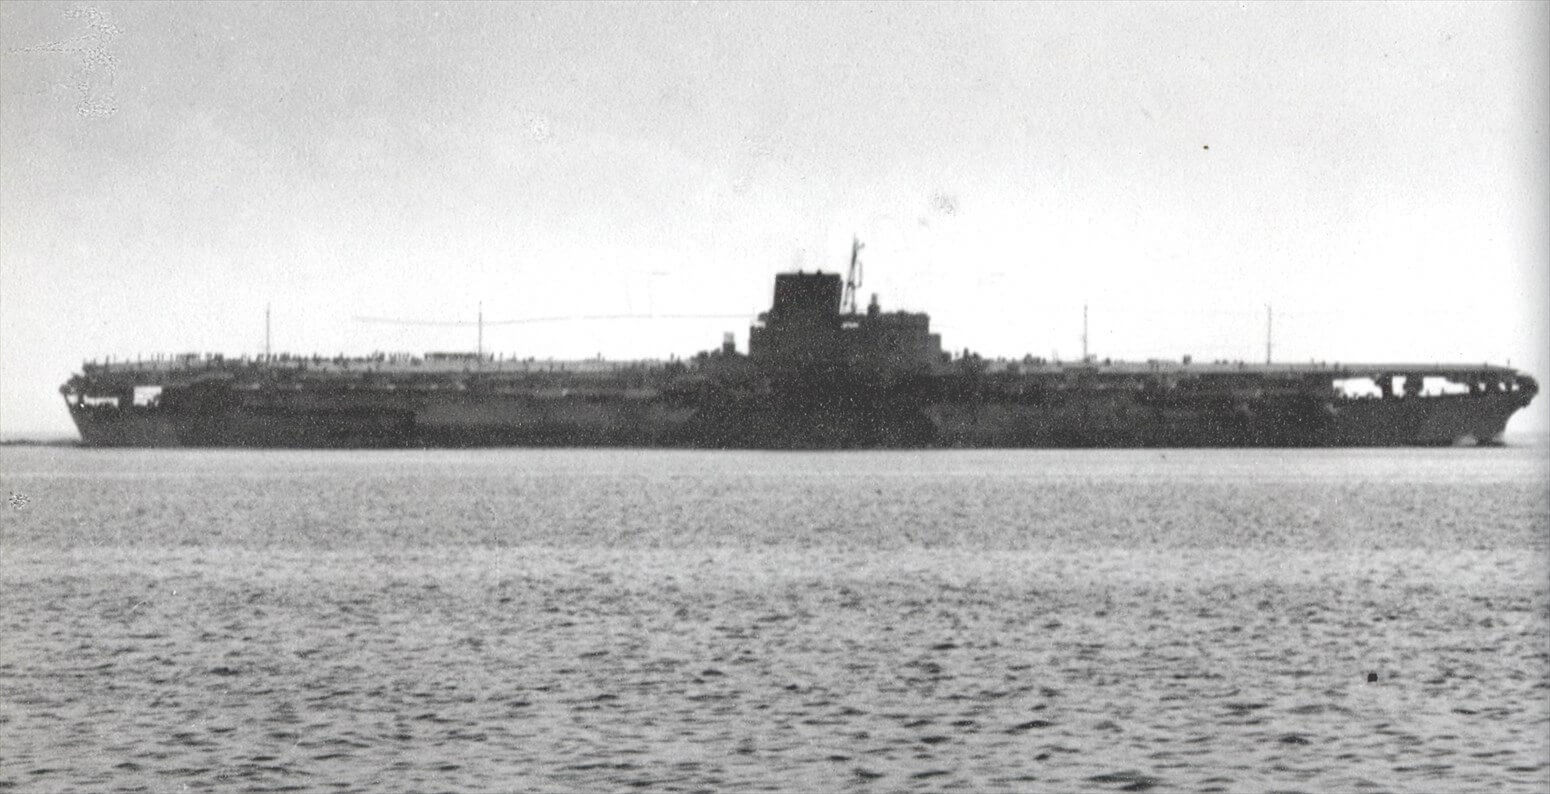 信濃【航空母艦】<br><font size=5%>SHINANO【Aircraft carrier】</font>